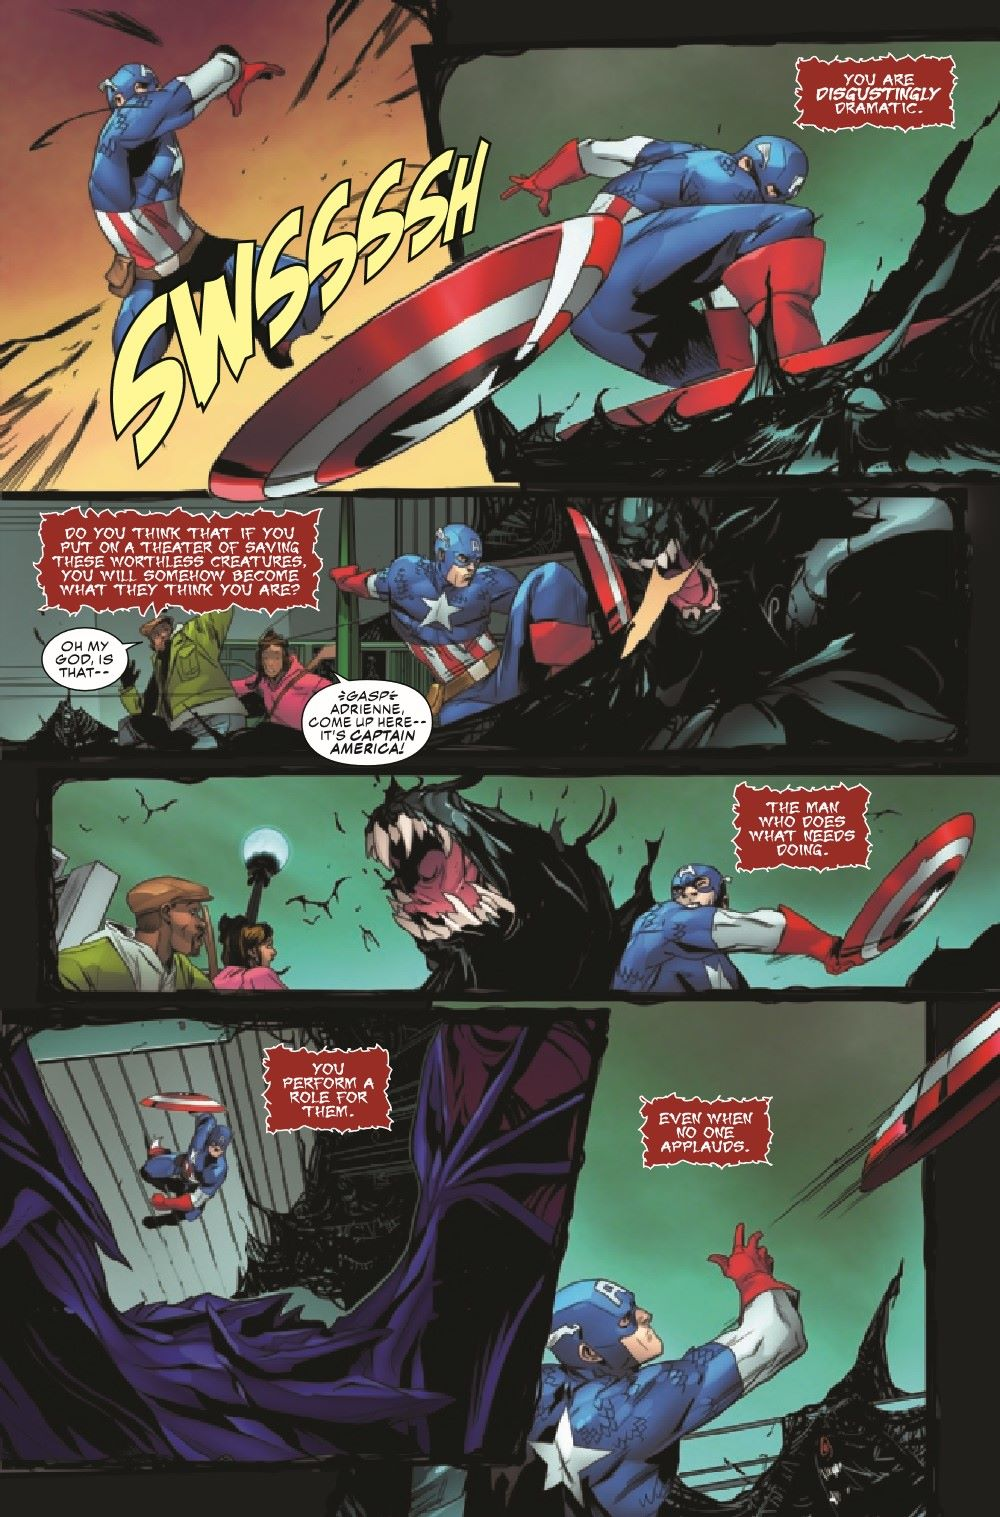 CAPAKIB2021001_Preview-6 ComicList Previews: KING IN BLACK CAPTAIN AMERICA #1